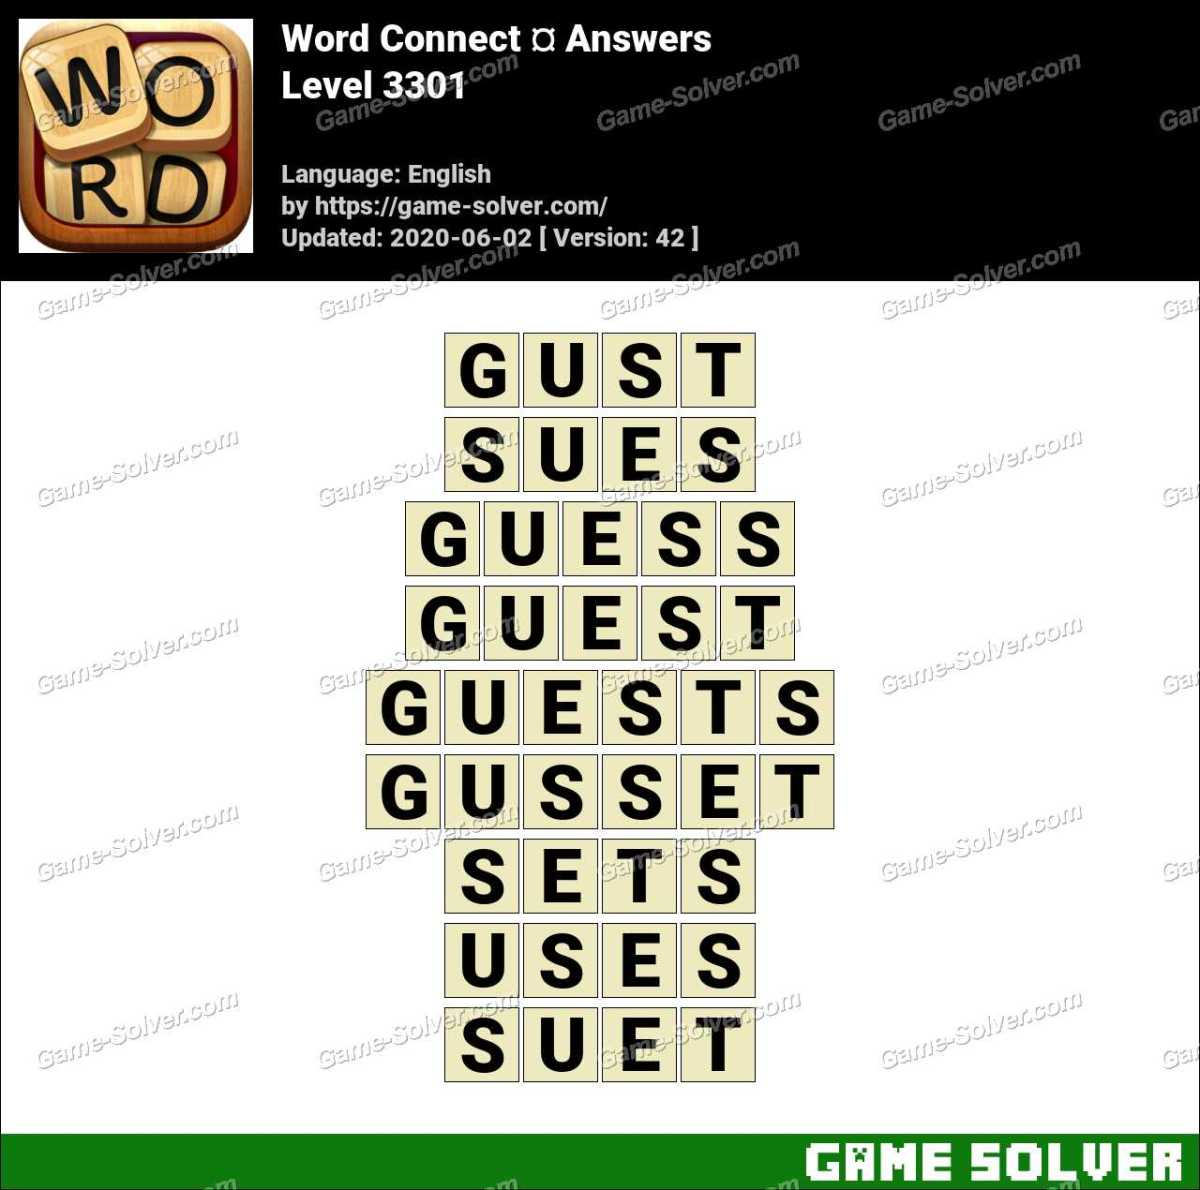 Word Connect Level 3301 Answers